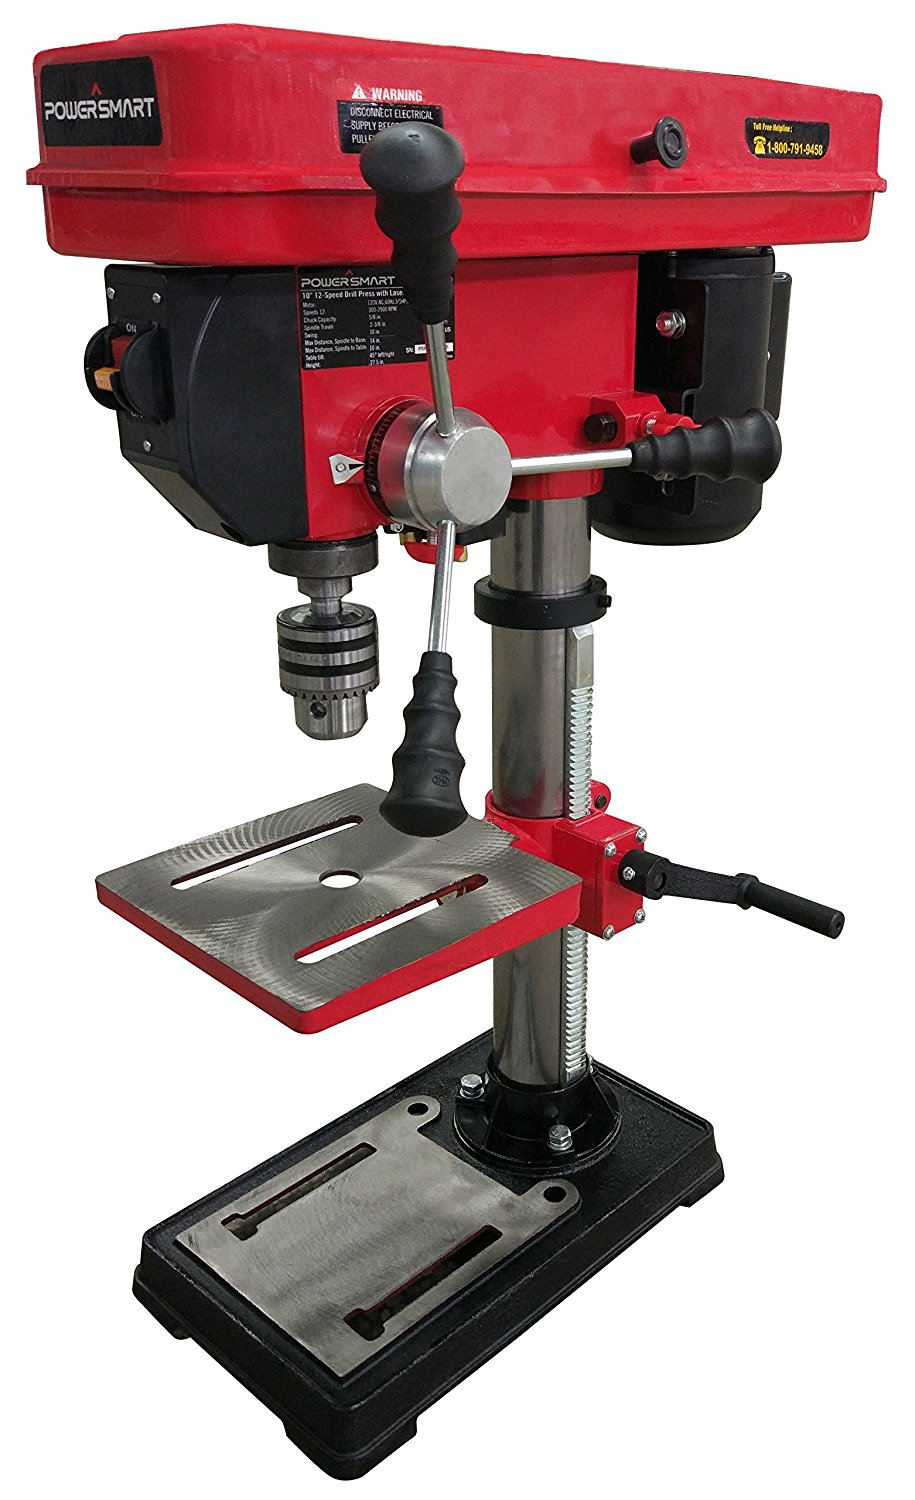 PowerSmart PS310 drill press